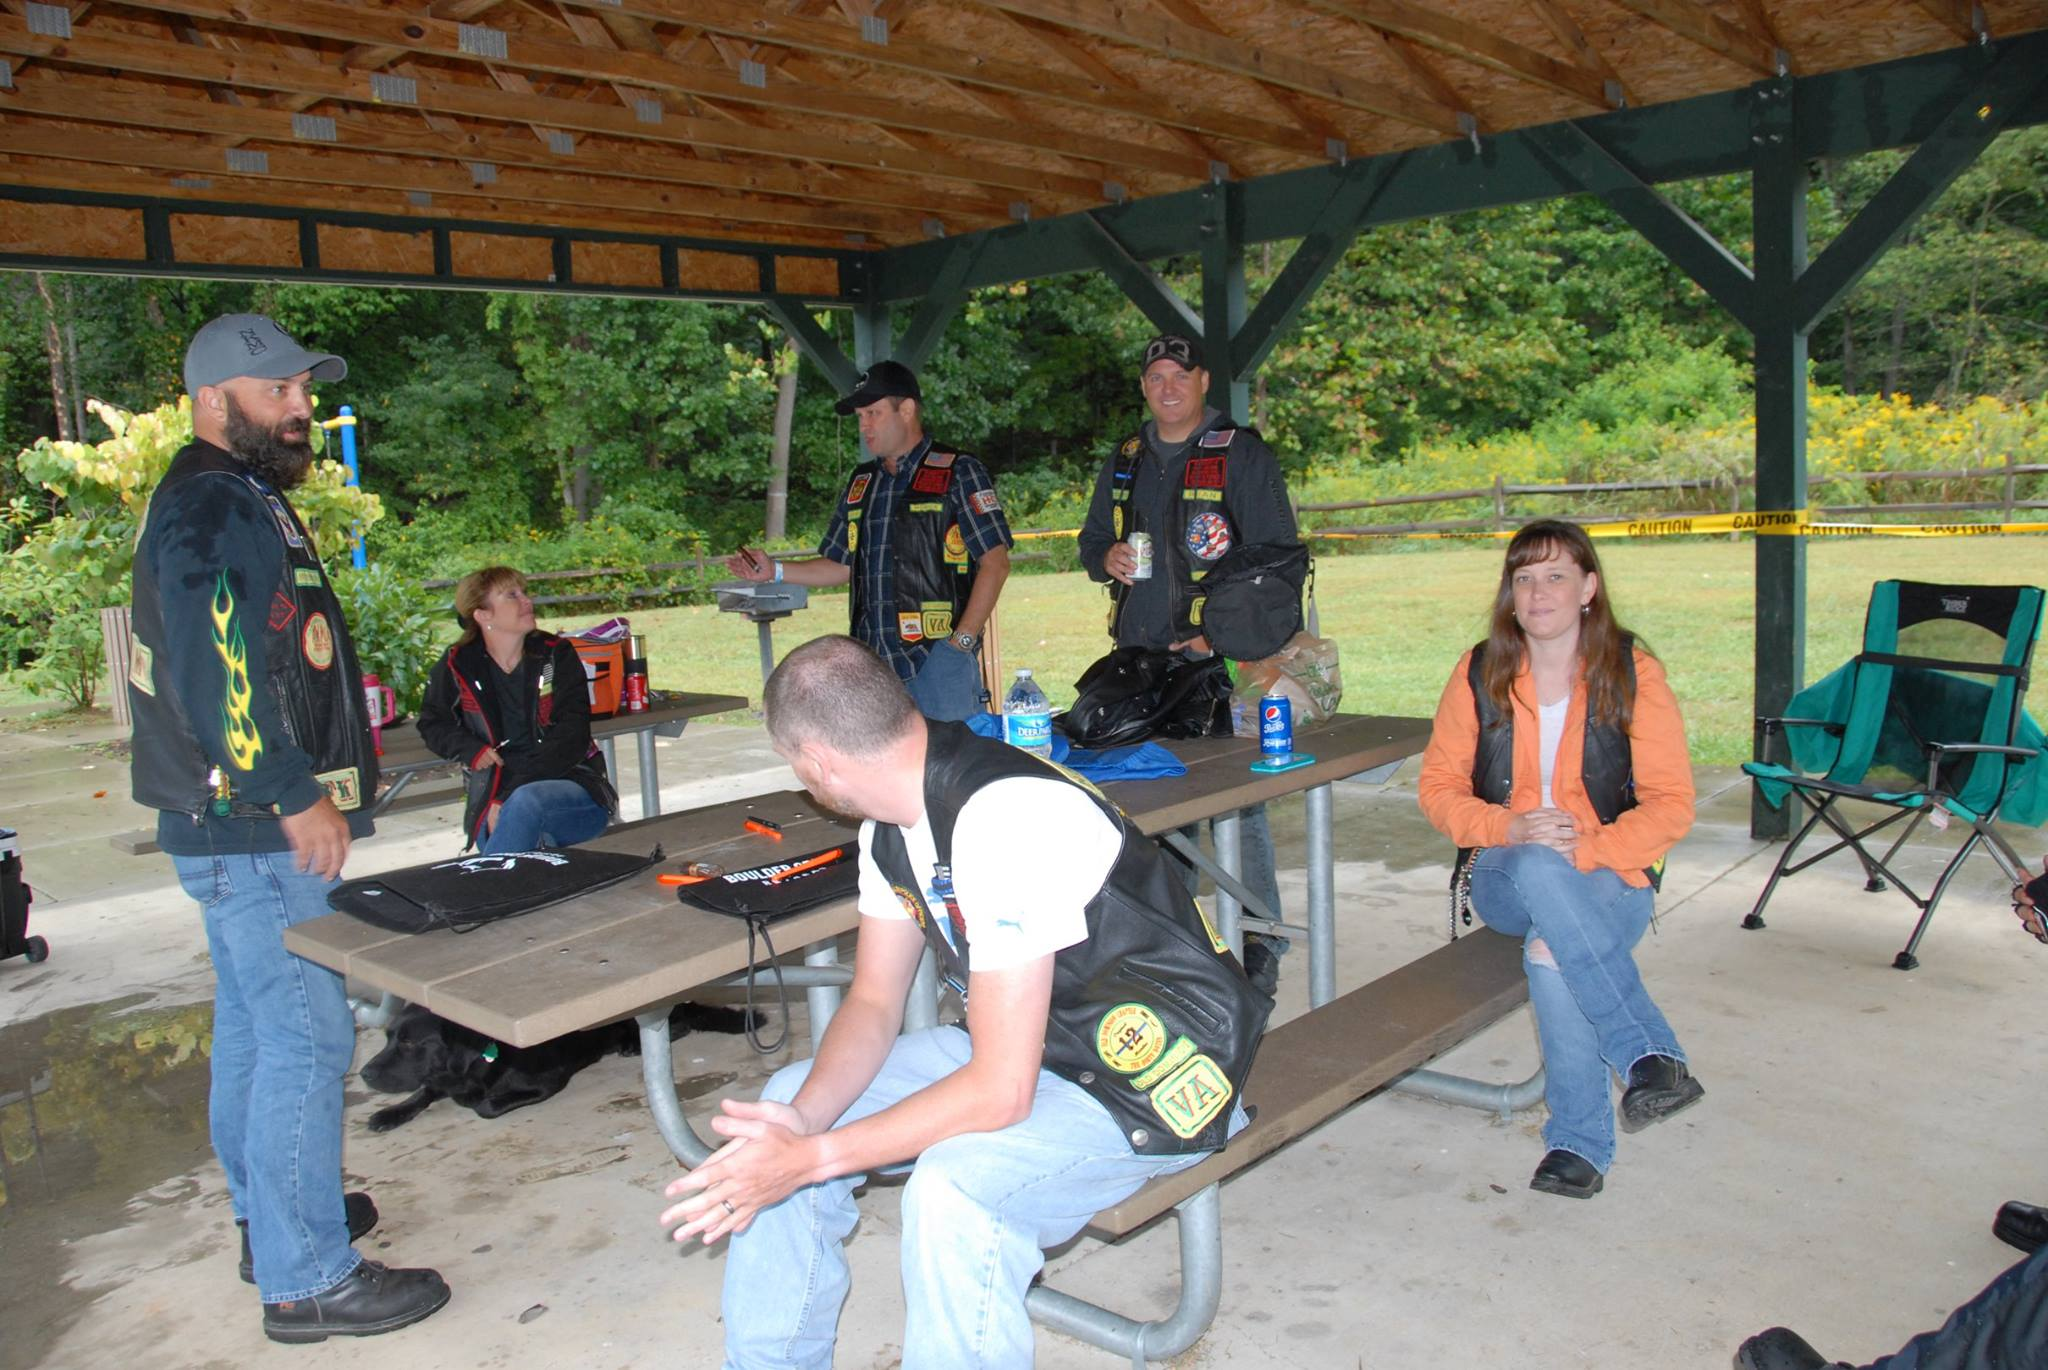 Wounded warrior poker run-Linden